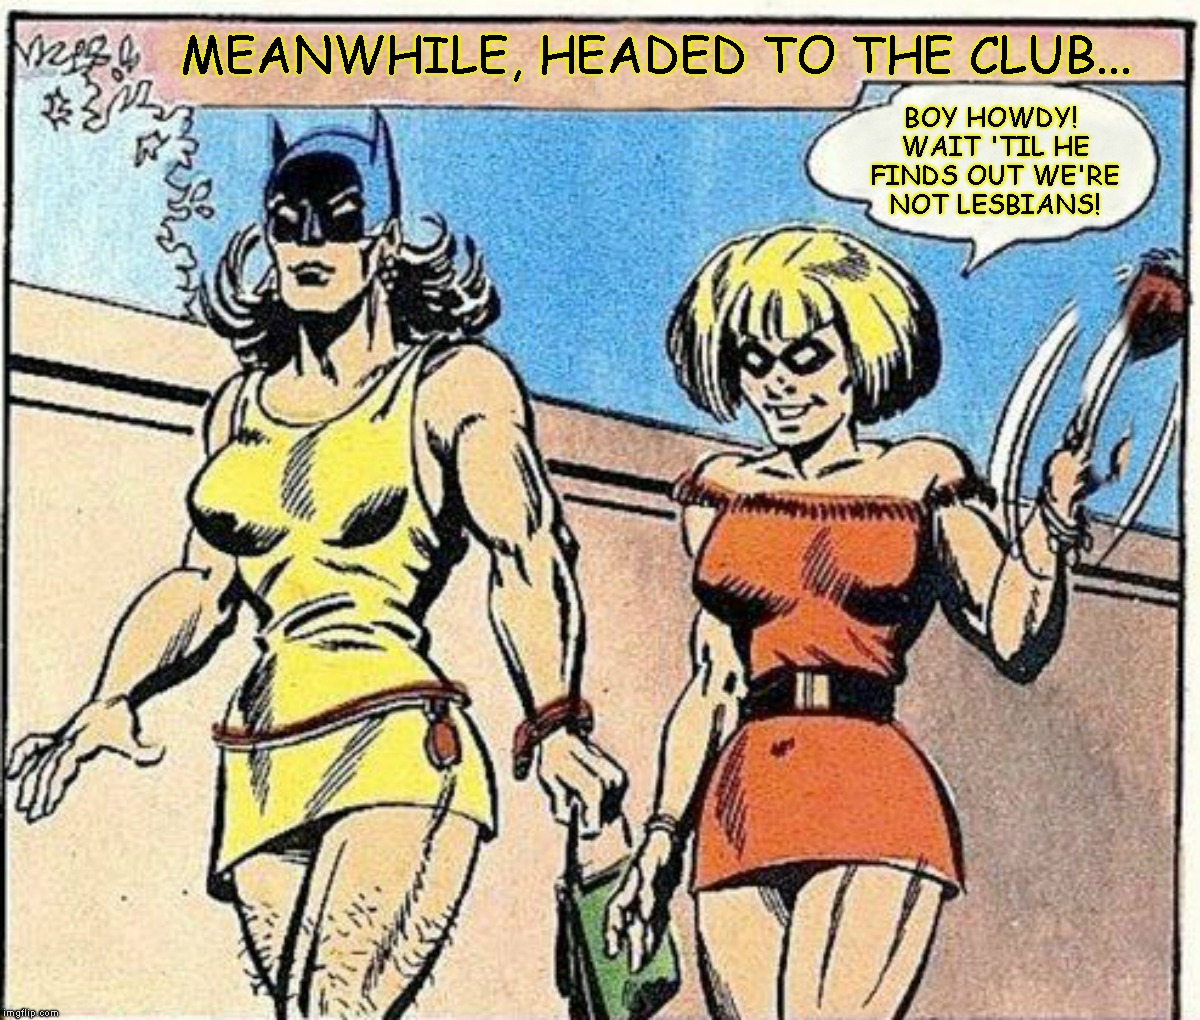 Them Hips Though | MEANWHILE, HEADED TO THE CLUB... BOY HOWDY! WAIT 'TIL HE FINDS OUT WE'RE NOT LESBIANS! | image tagged in batman and robin,batman,robin,tranny,wtf,that's not right | made w/ Imgflip meme maker